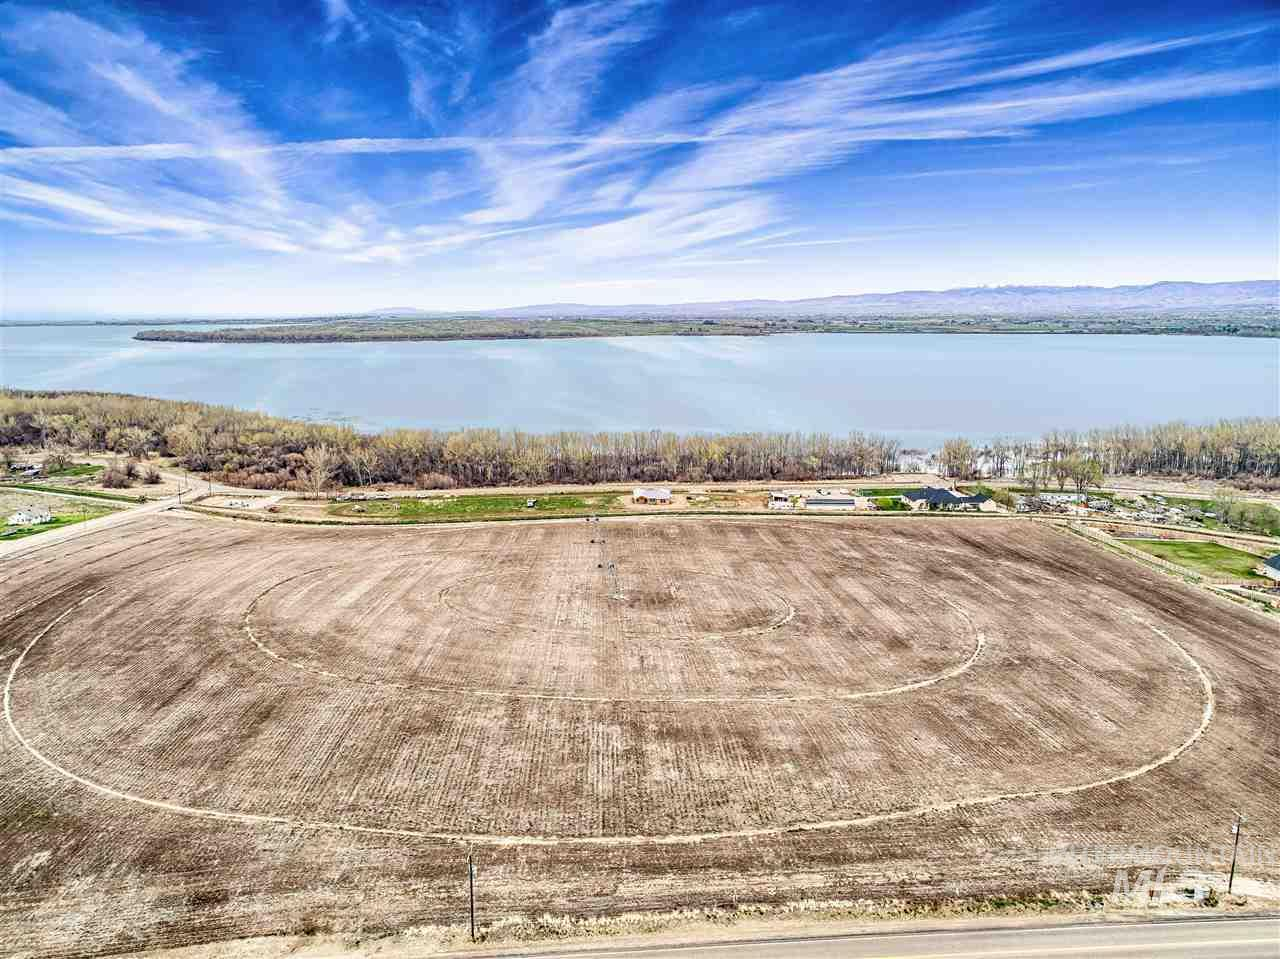 TBD LOCUST LANE, Nampa, Idaho 83686, Land For Sale, Price $1,050,000, 98724945